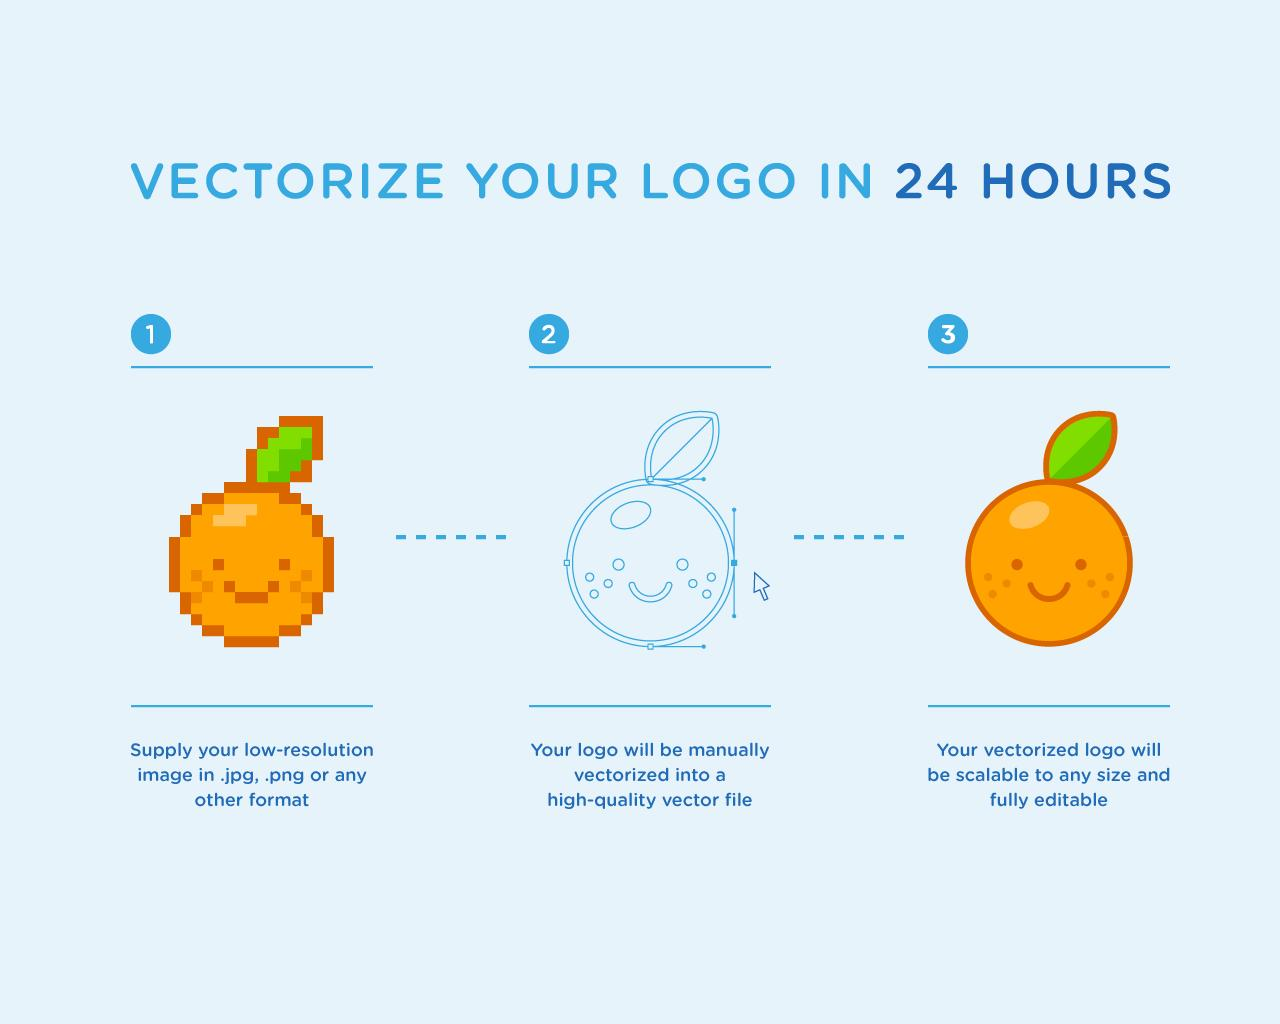 Vectorize Your Logo in 24 Hours by eightbit - 65607